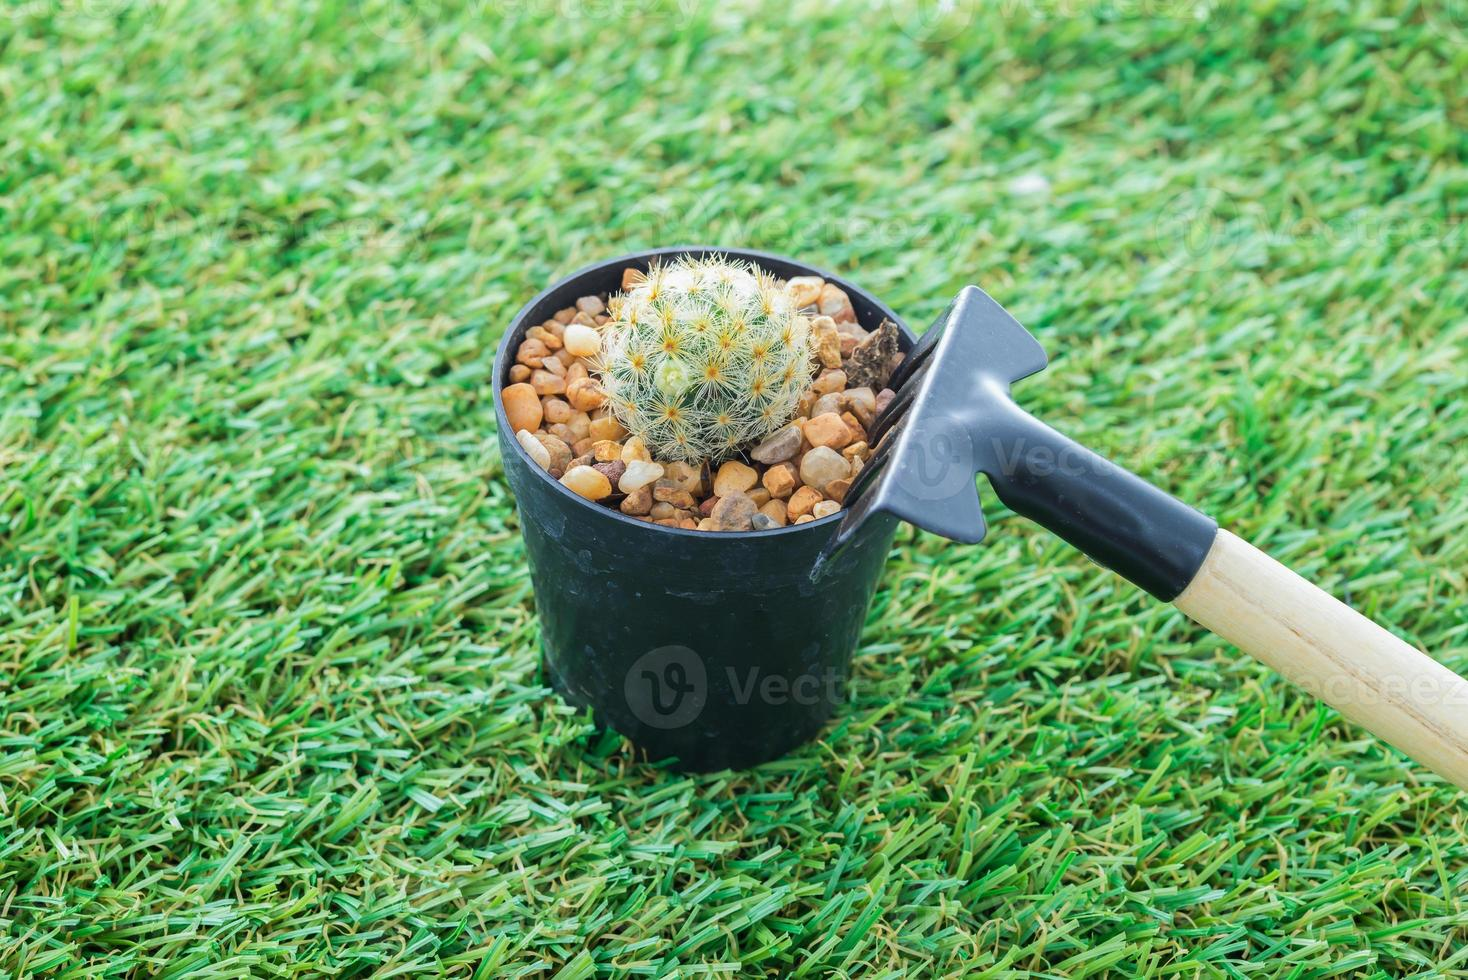 Cactus and rake Hand Gardening Tools photo